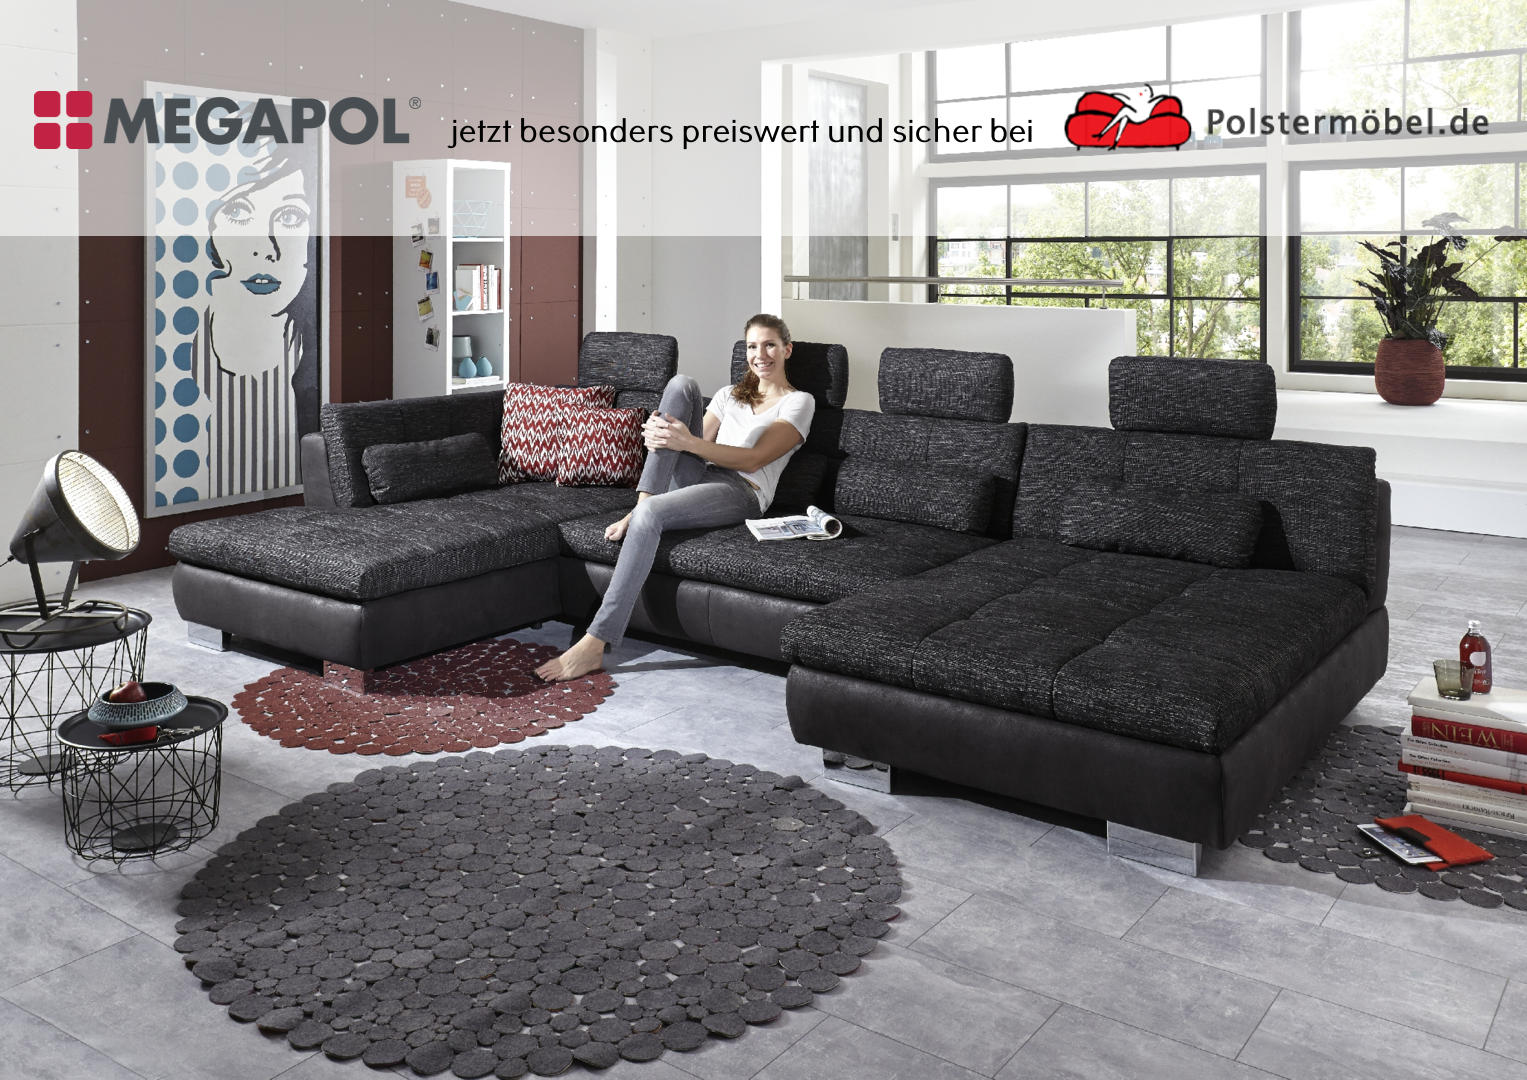 megapol timeless polsterm. Black Bedroom Furniture Sets. Home Design Ideas